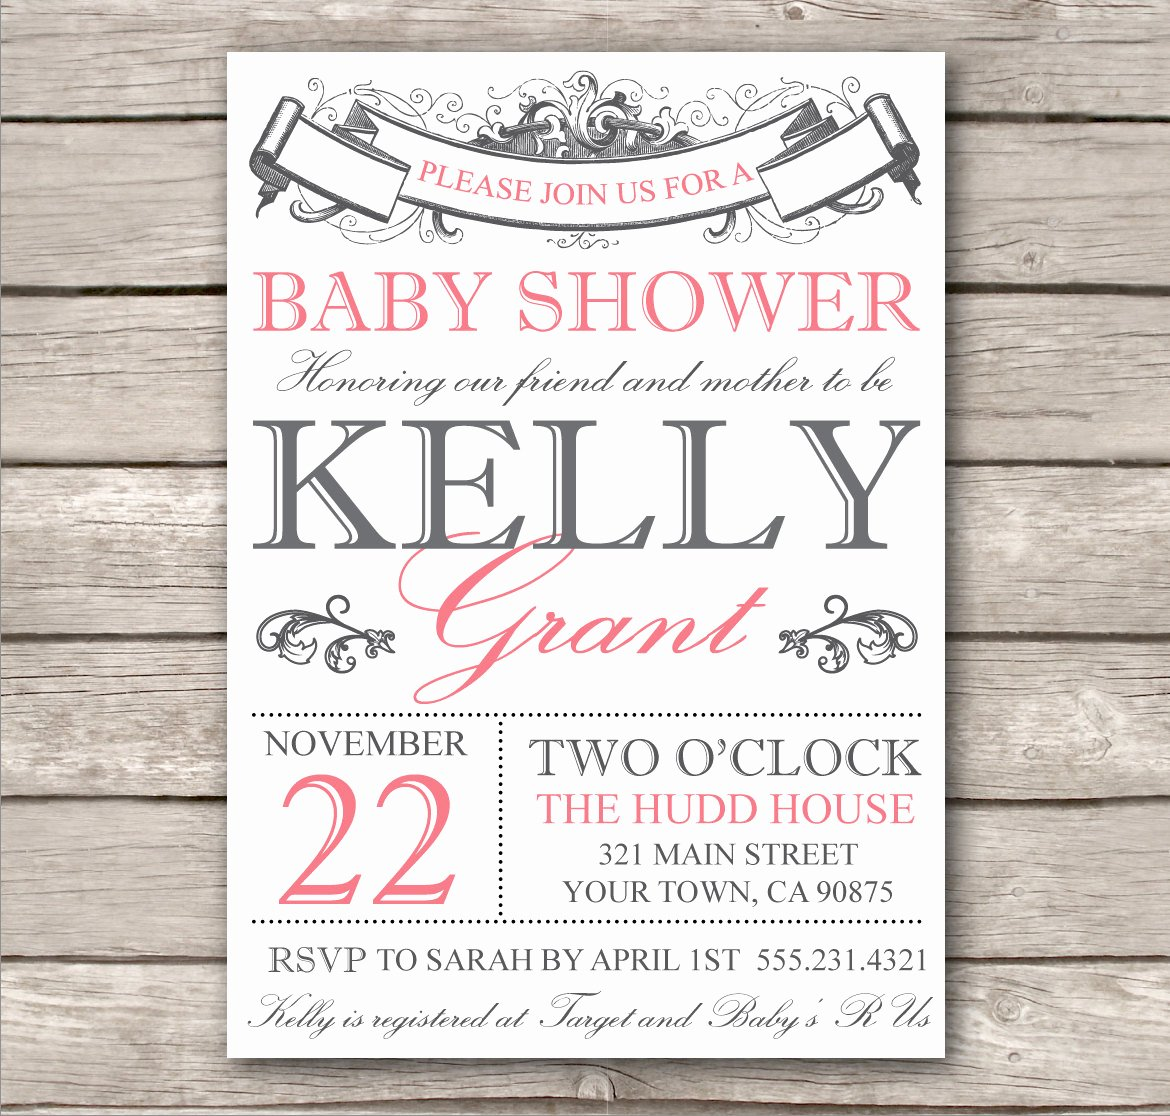 Baby Shower Invitation Template Free Inspirational Bridal Shower Invitation or Baby Shower Invitation by